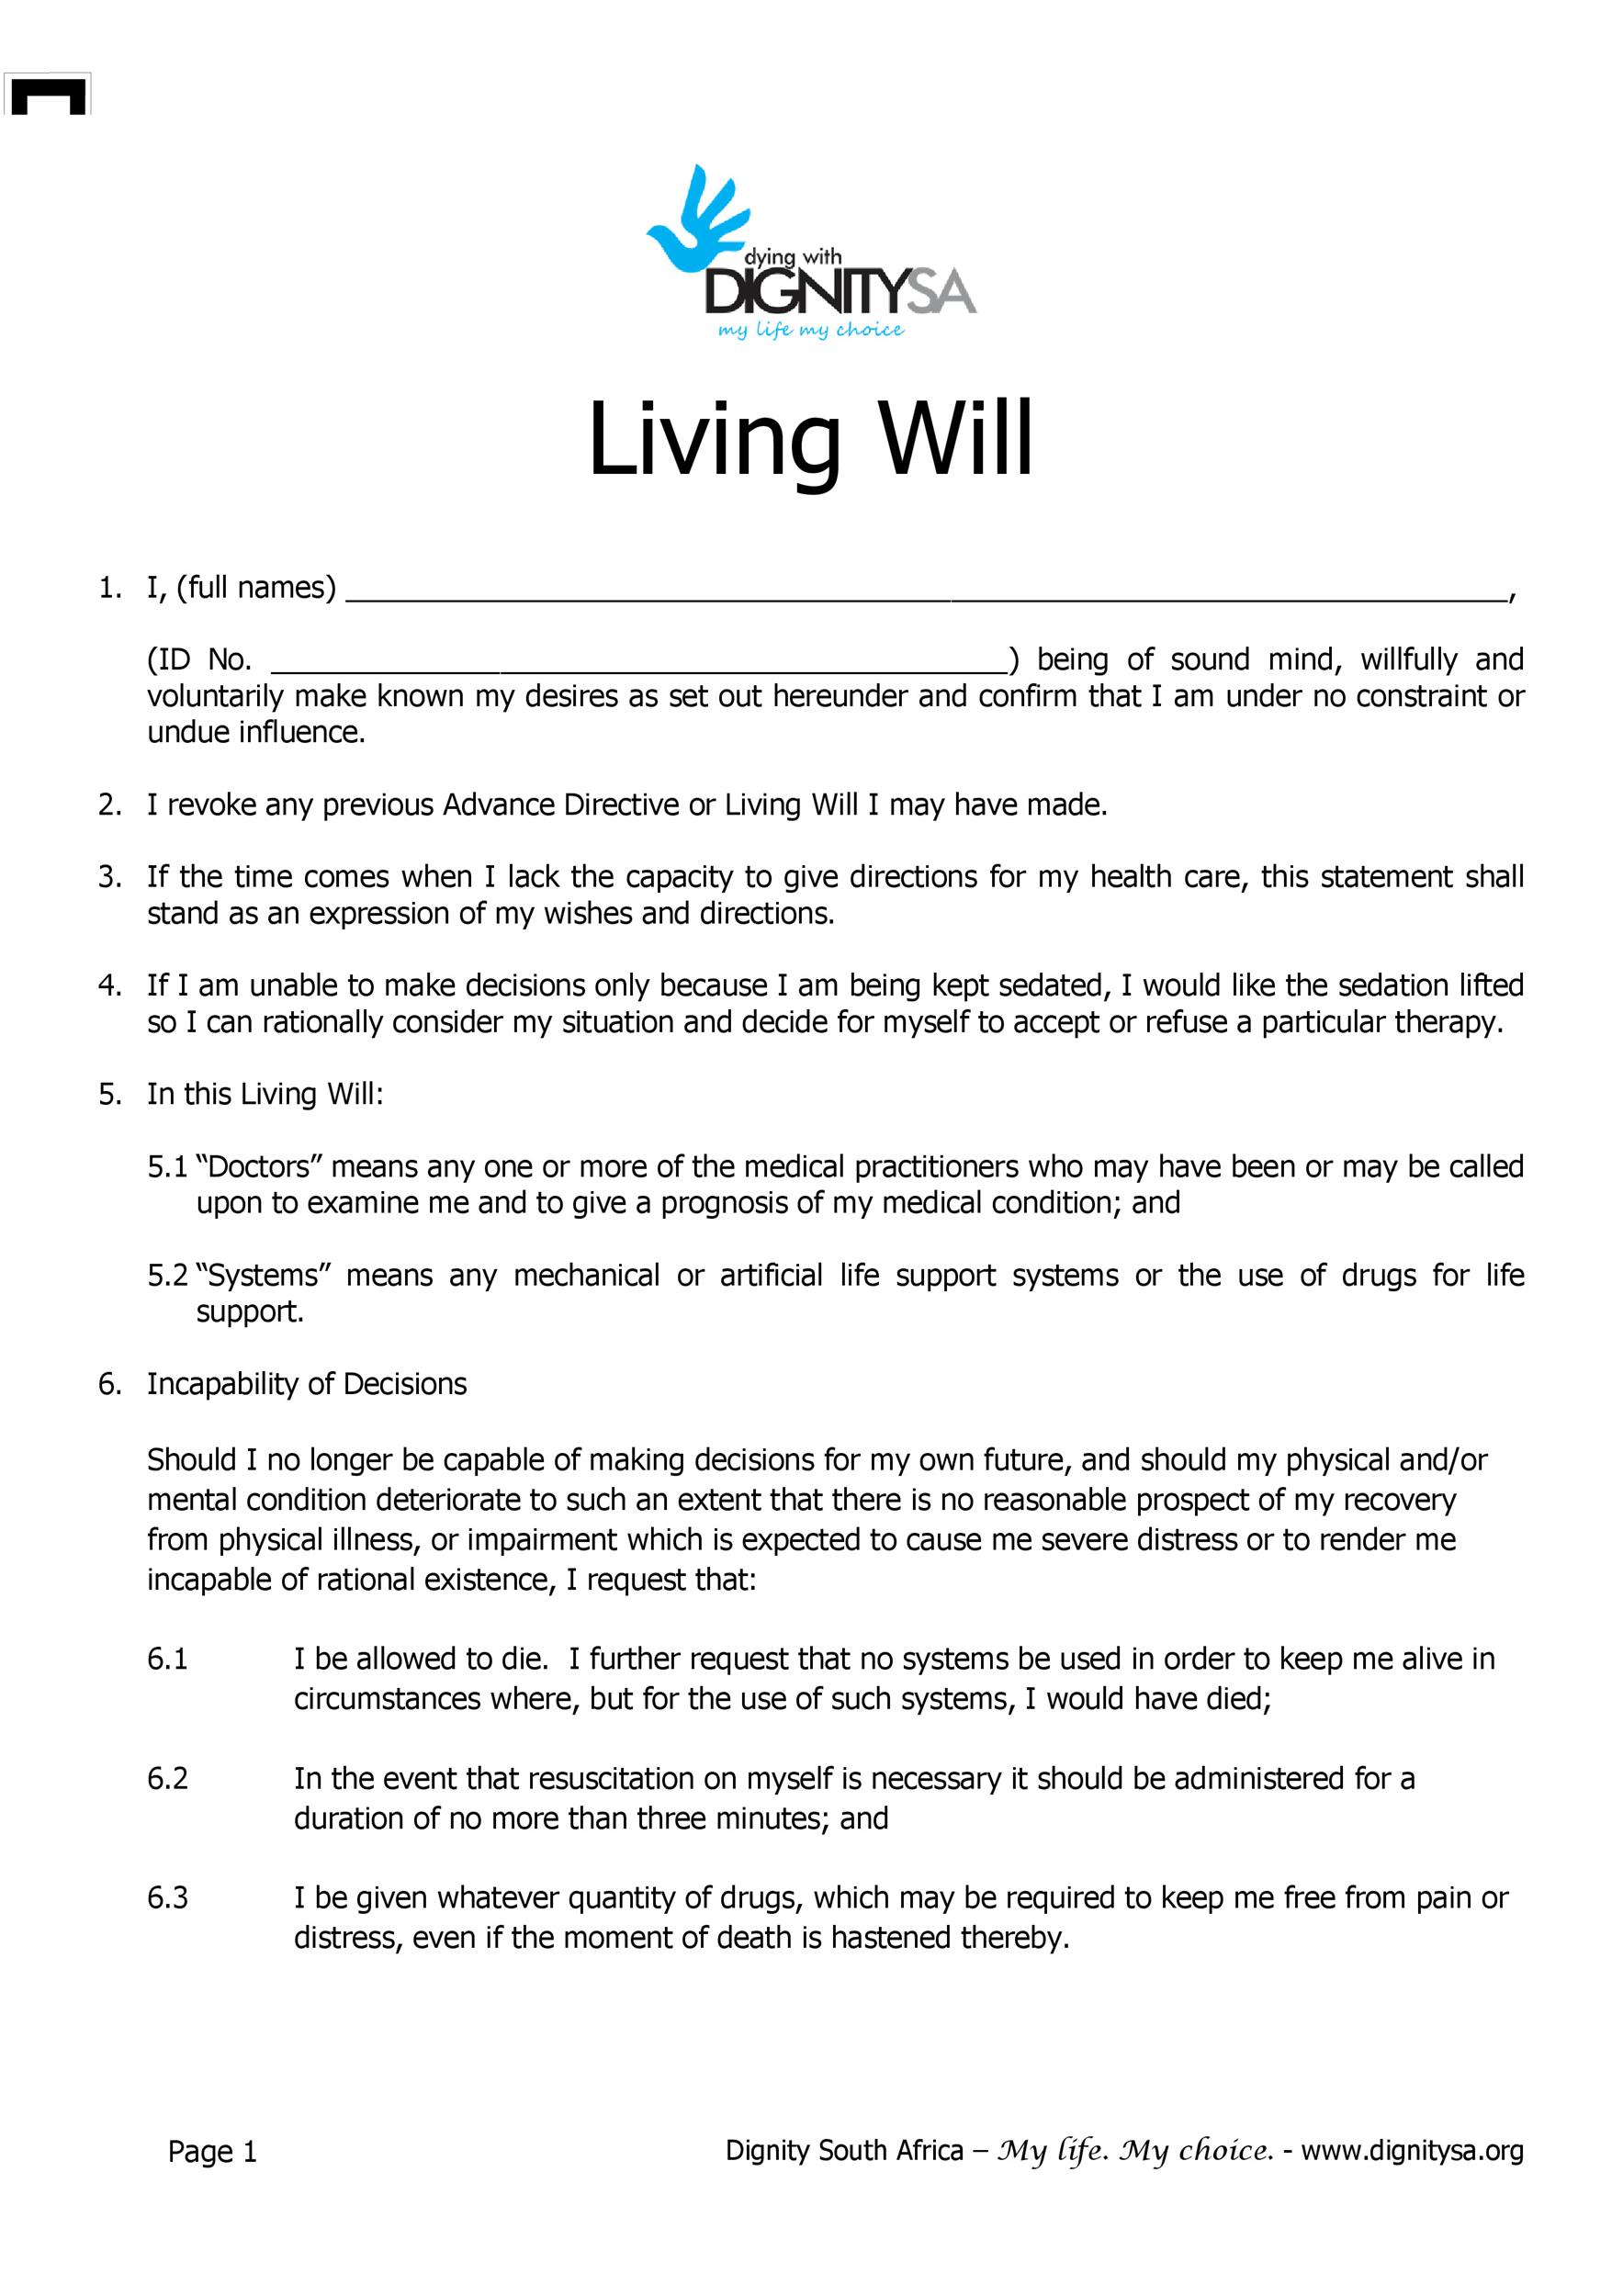 50 Free Living Will Templates Forms All States ᐅ Templatelab